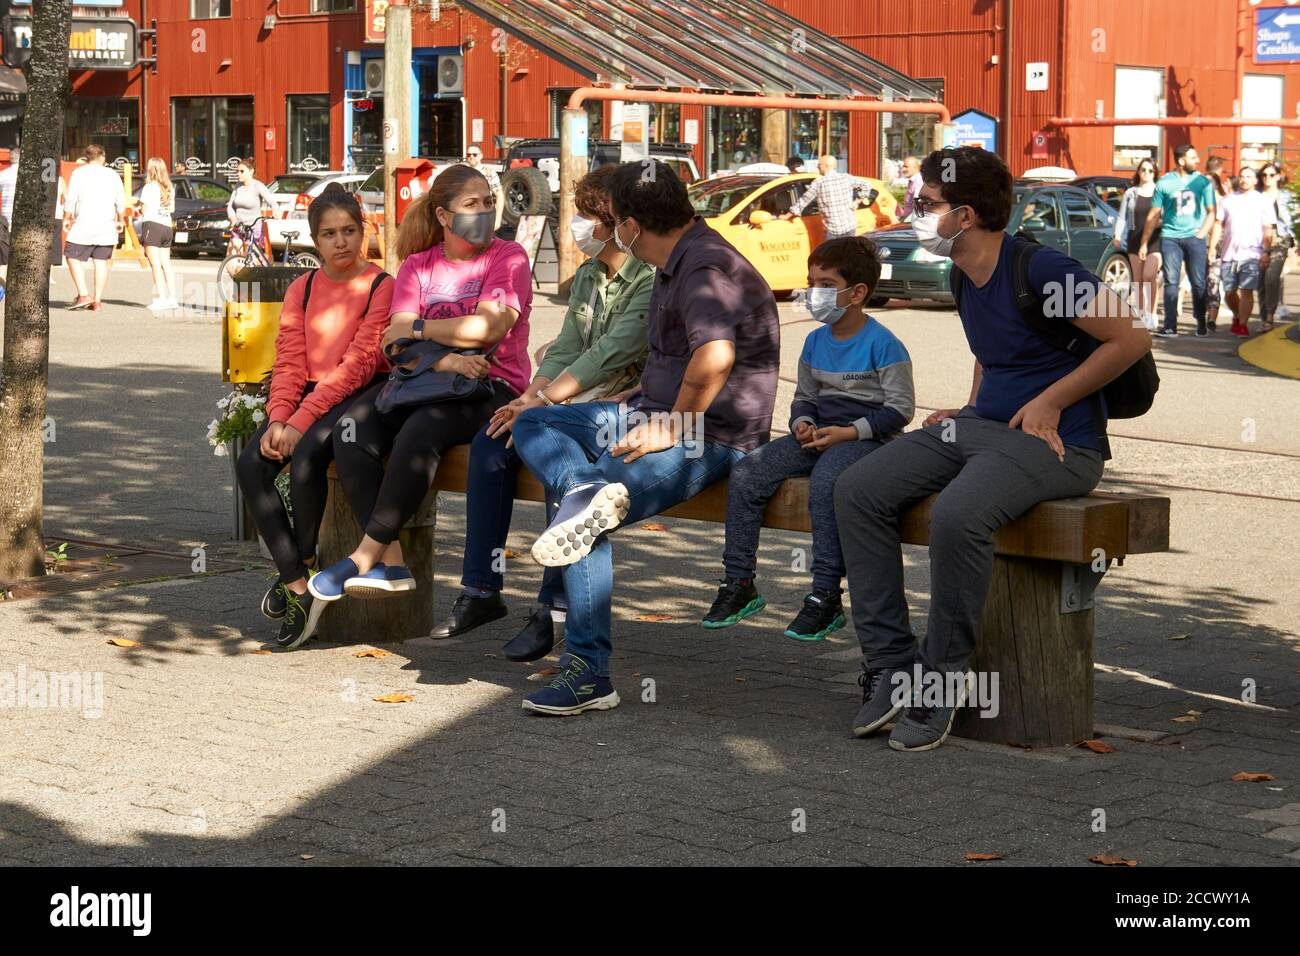 a-family-sitting-on-a-bench-wearing-prot